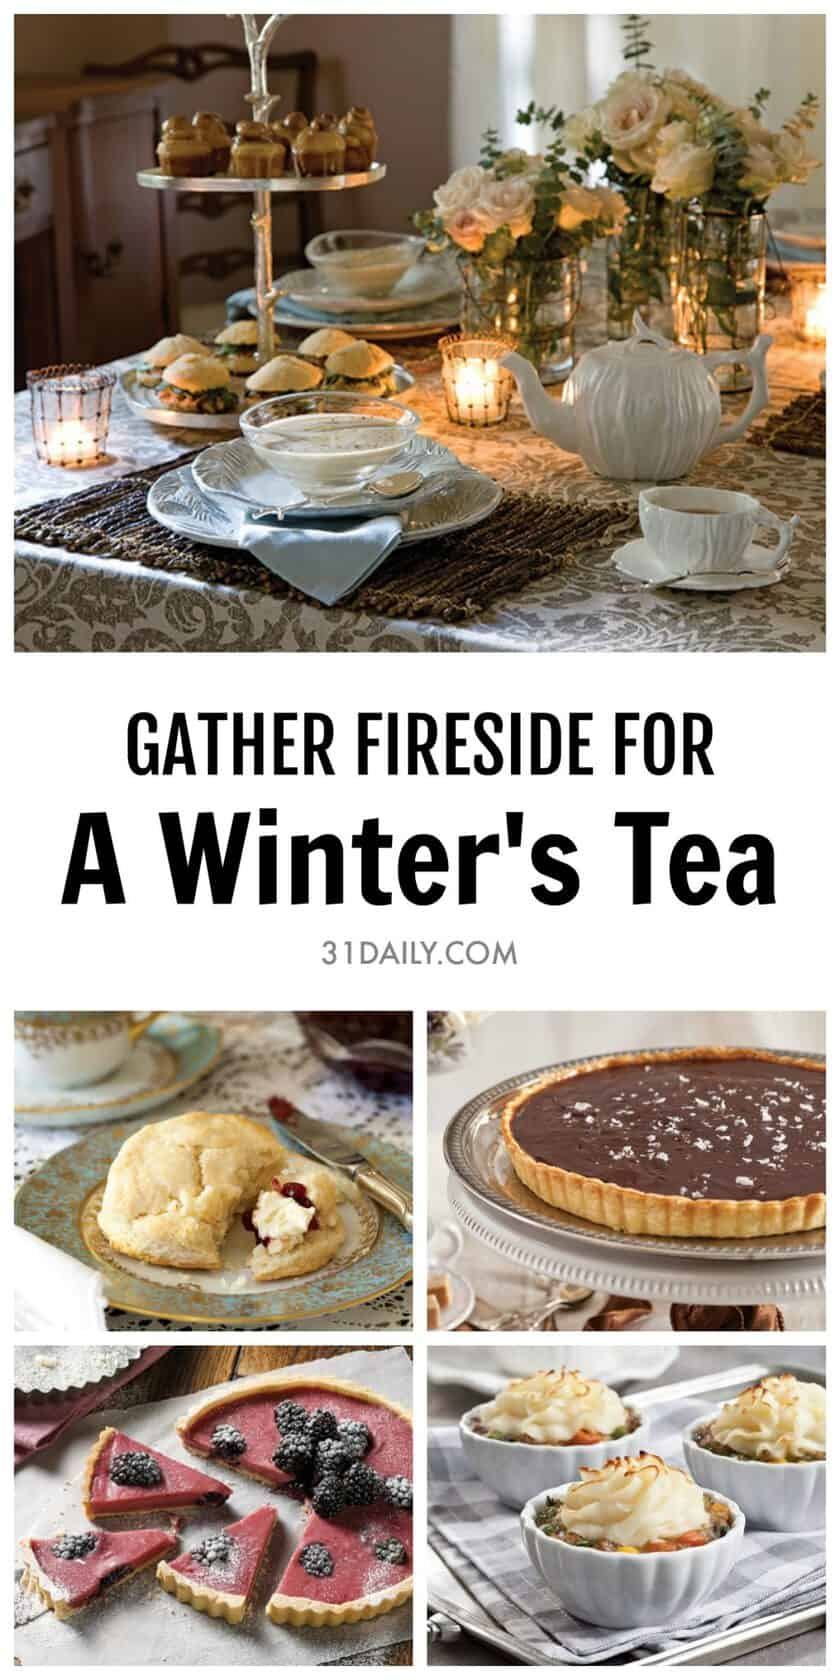 A Winter Afternoon Tea for Chilly, Snowy Days | 31Daily.com